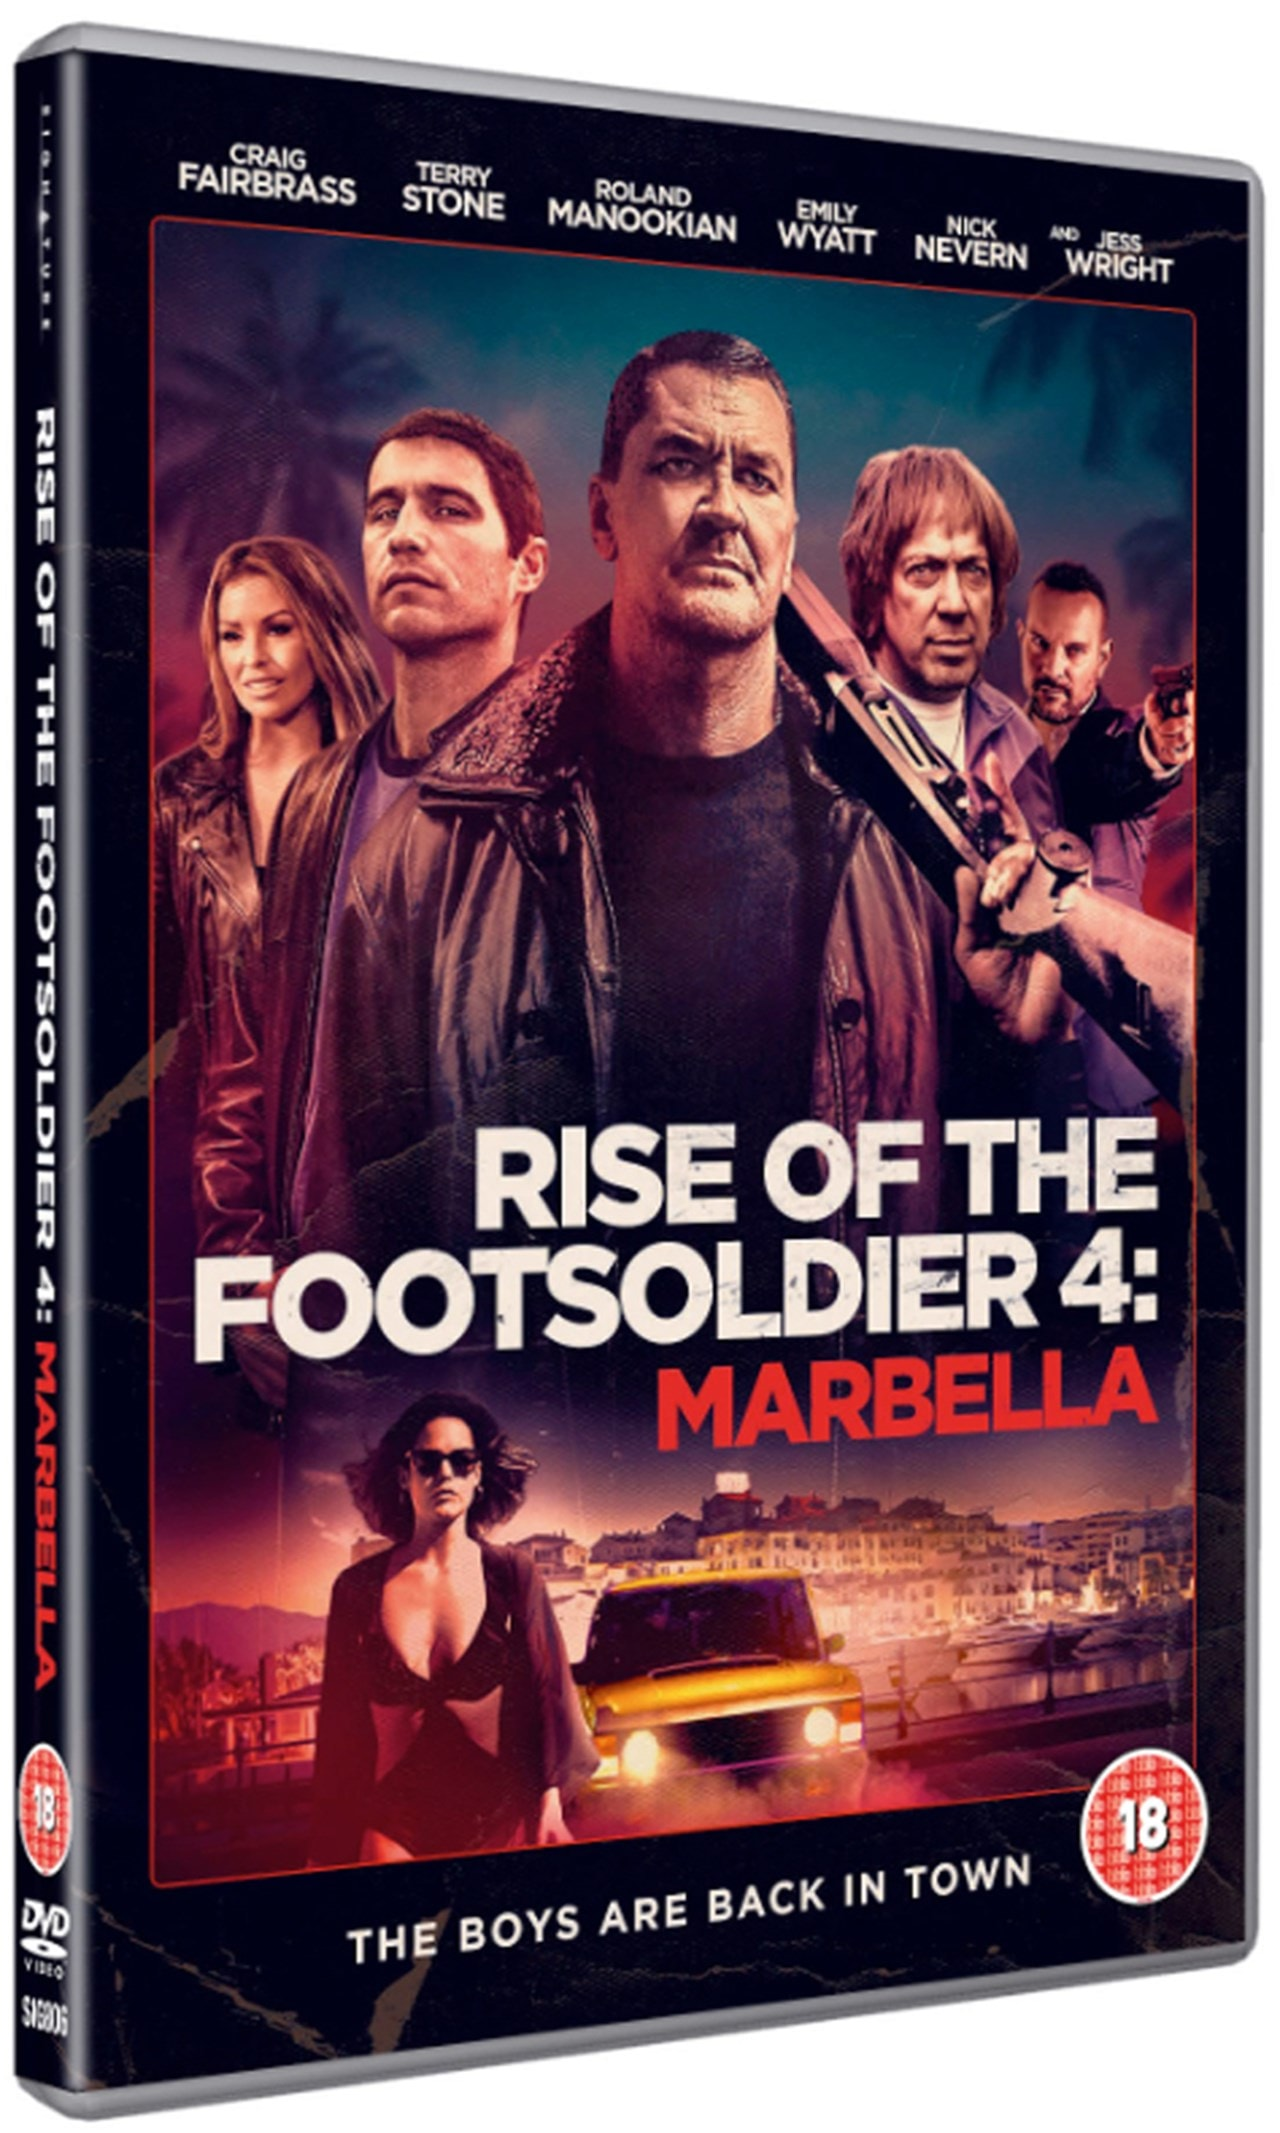 Rise of the Footsoldier 4 - Marbella - 2